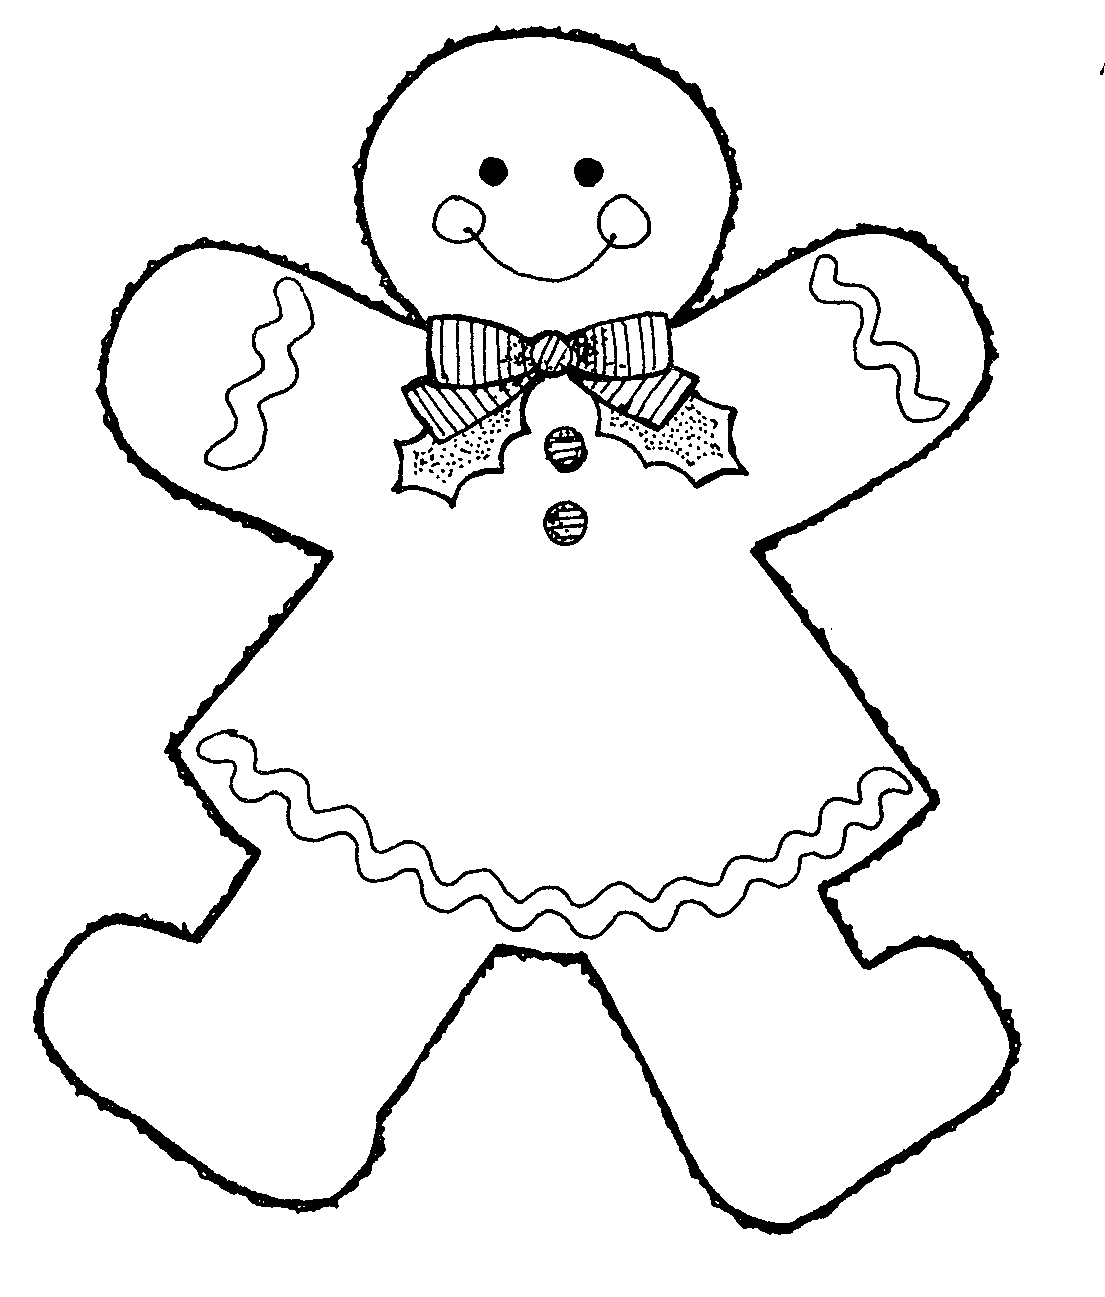 hight resolution of images for gingerbread man clip art